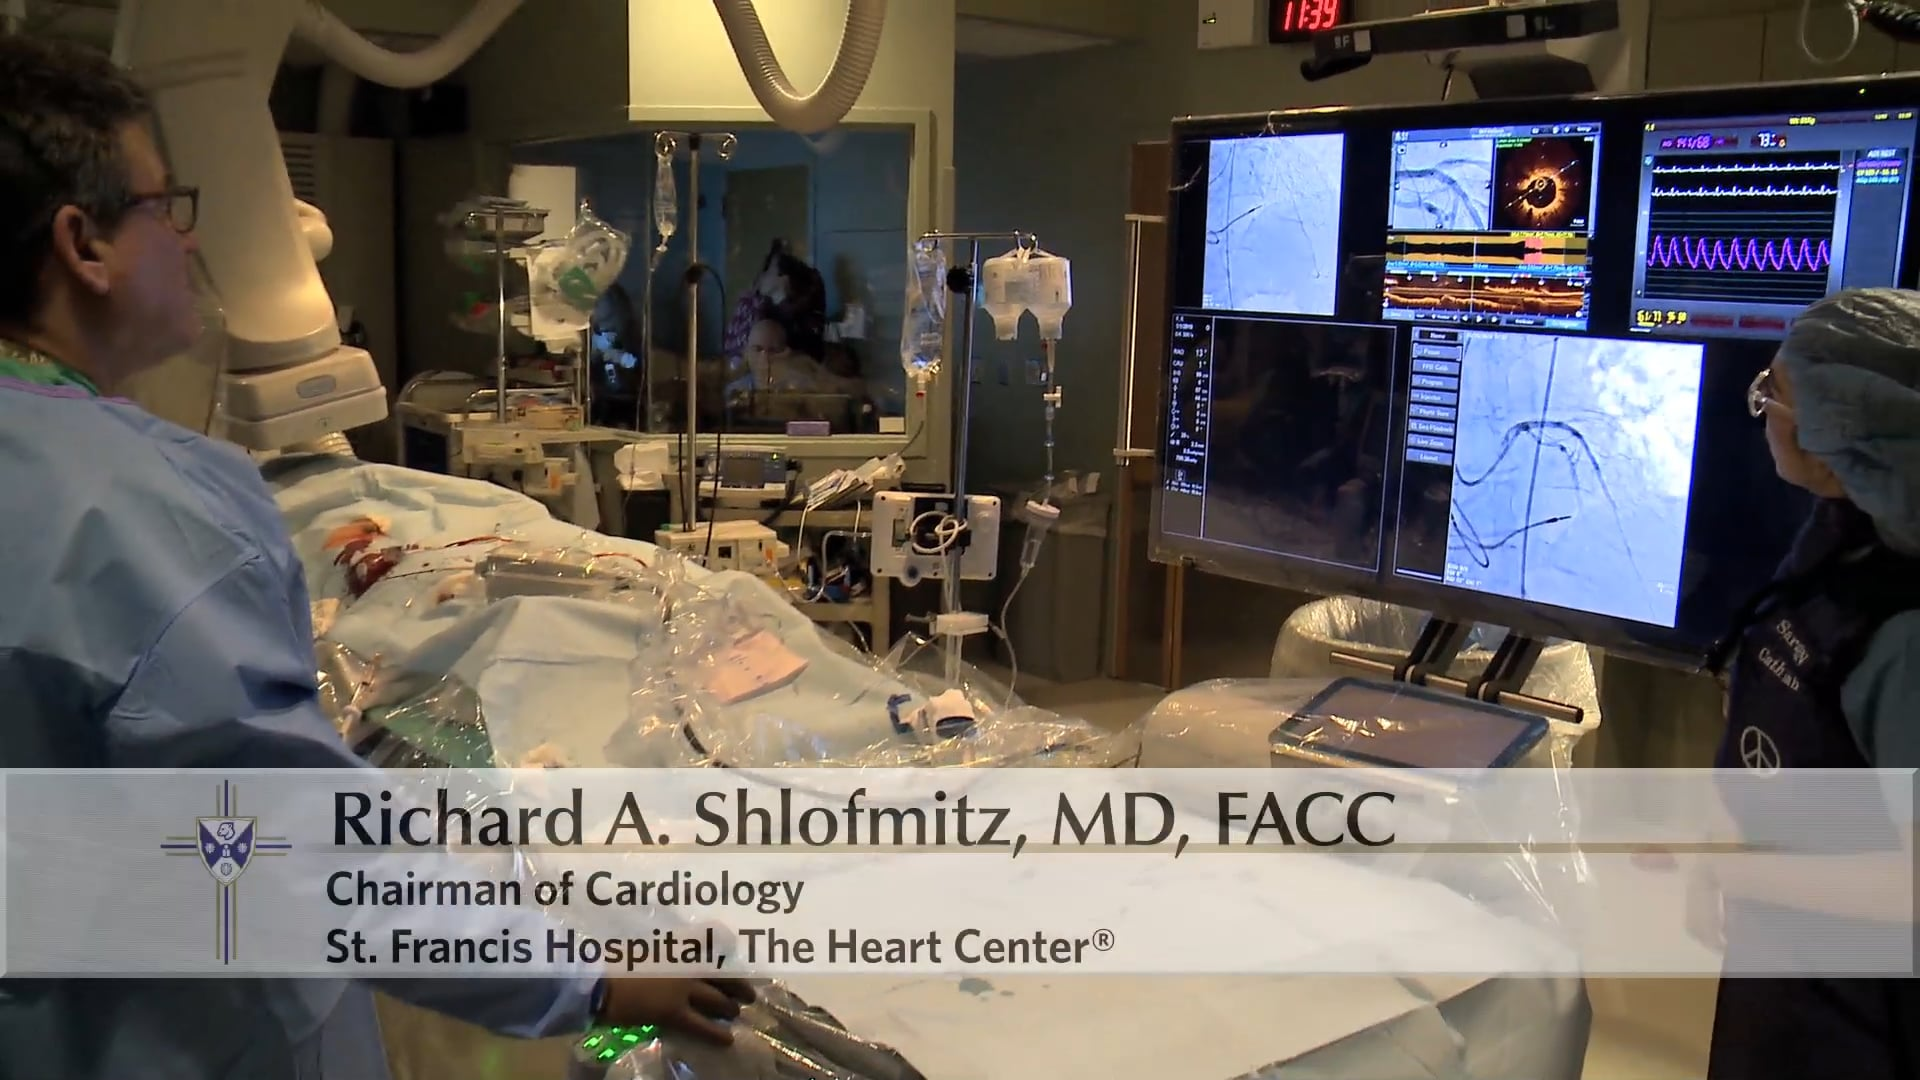 Dr. O: Faithfully Transforming Health Care - Improving Heart Health without Surgery